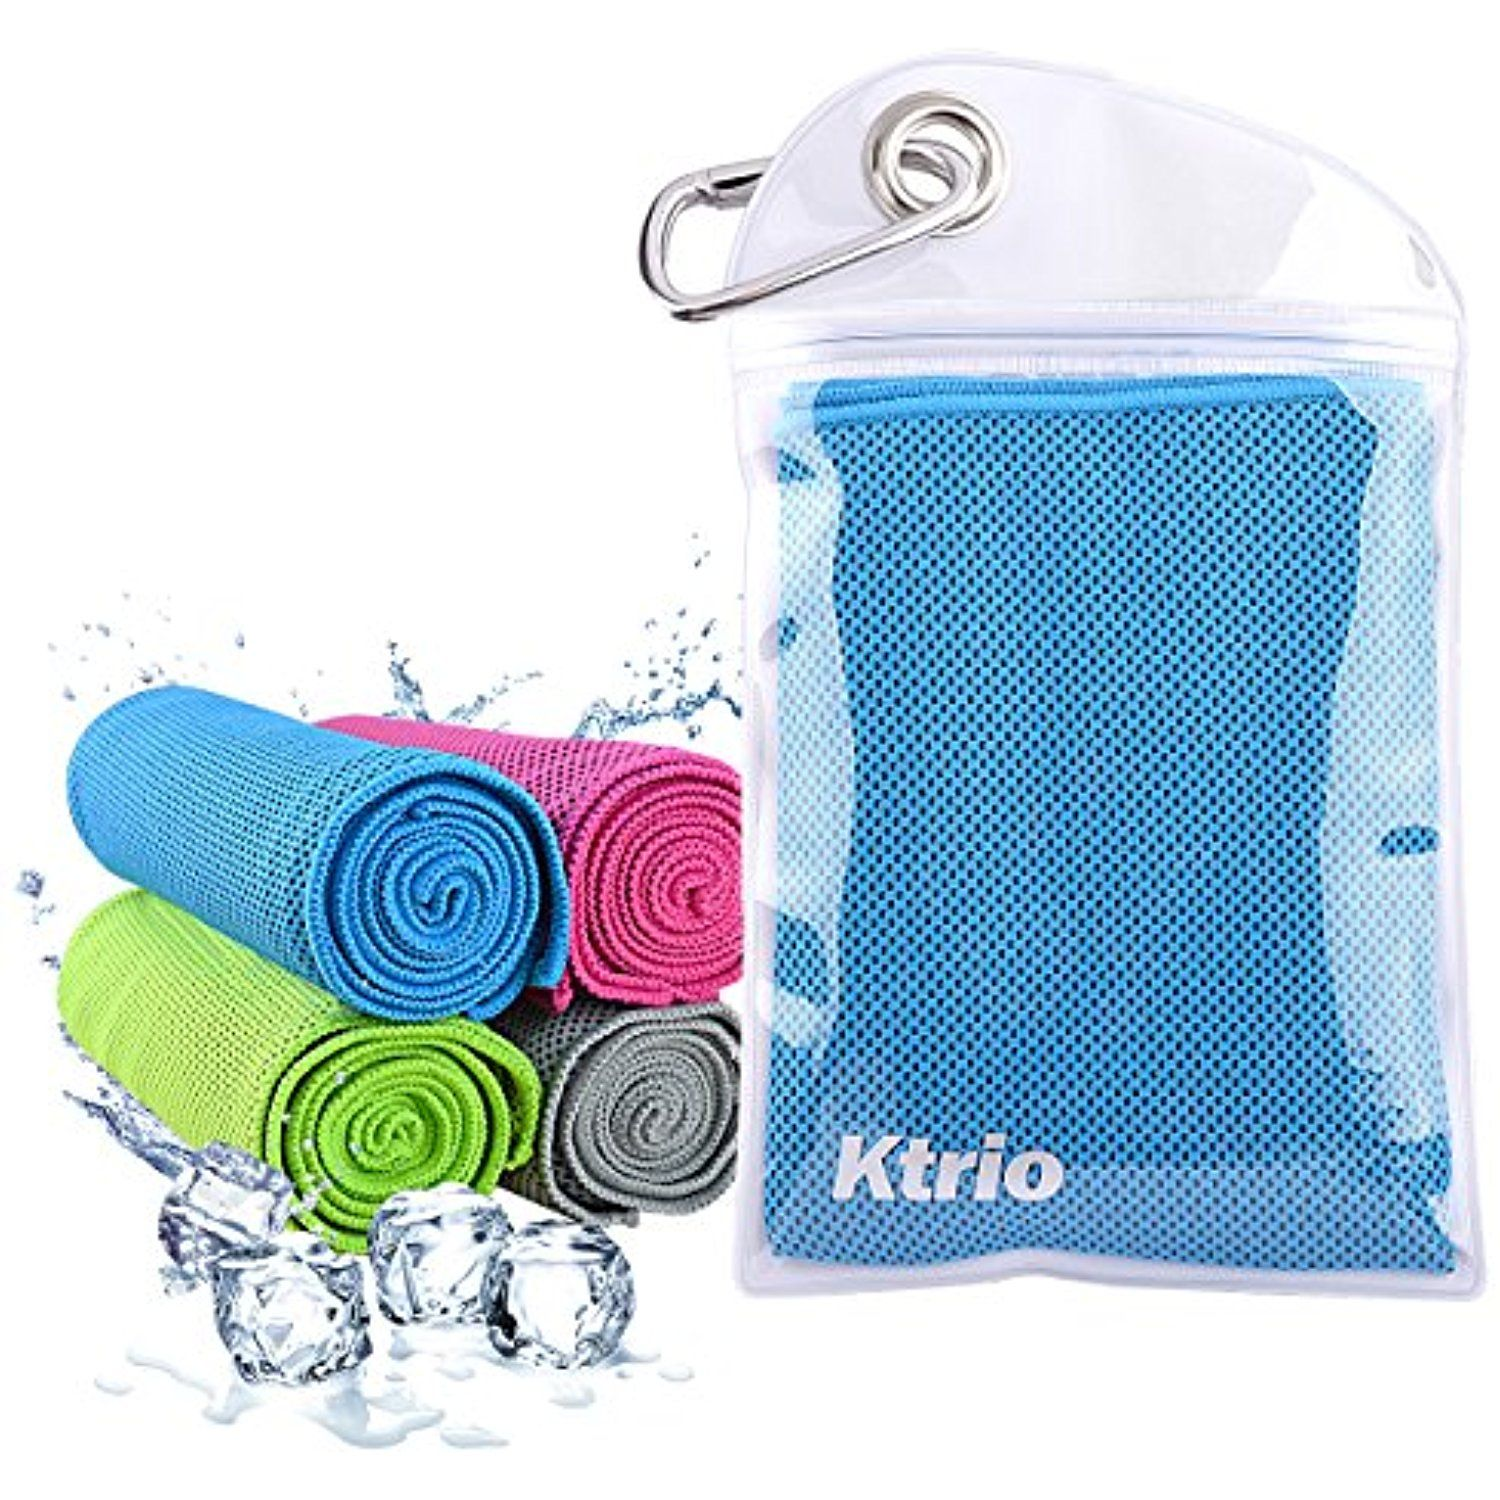 Ktrio Snap Cooling Towel Cooling Towel For Instant Relief 40a X